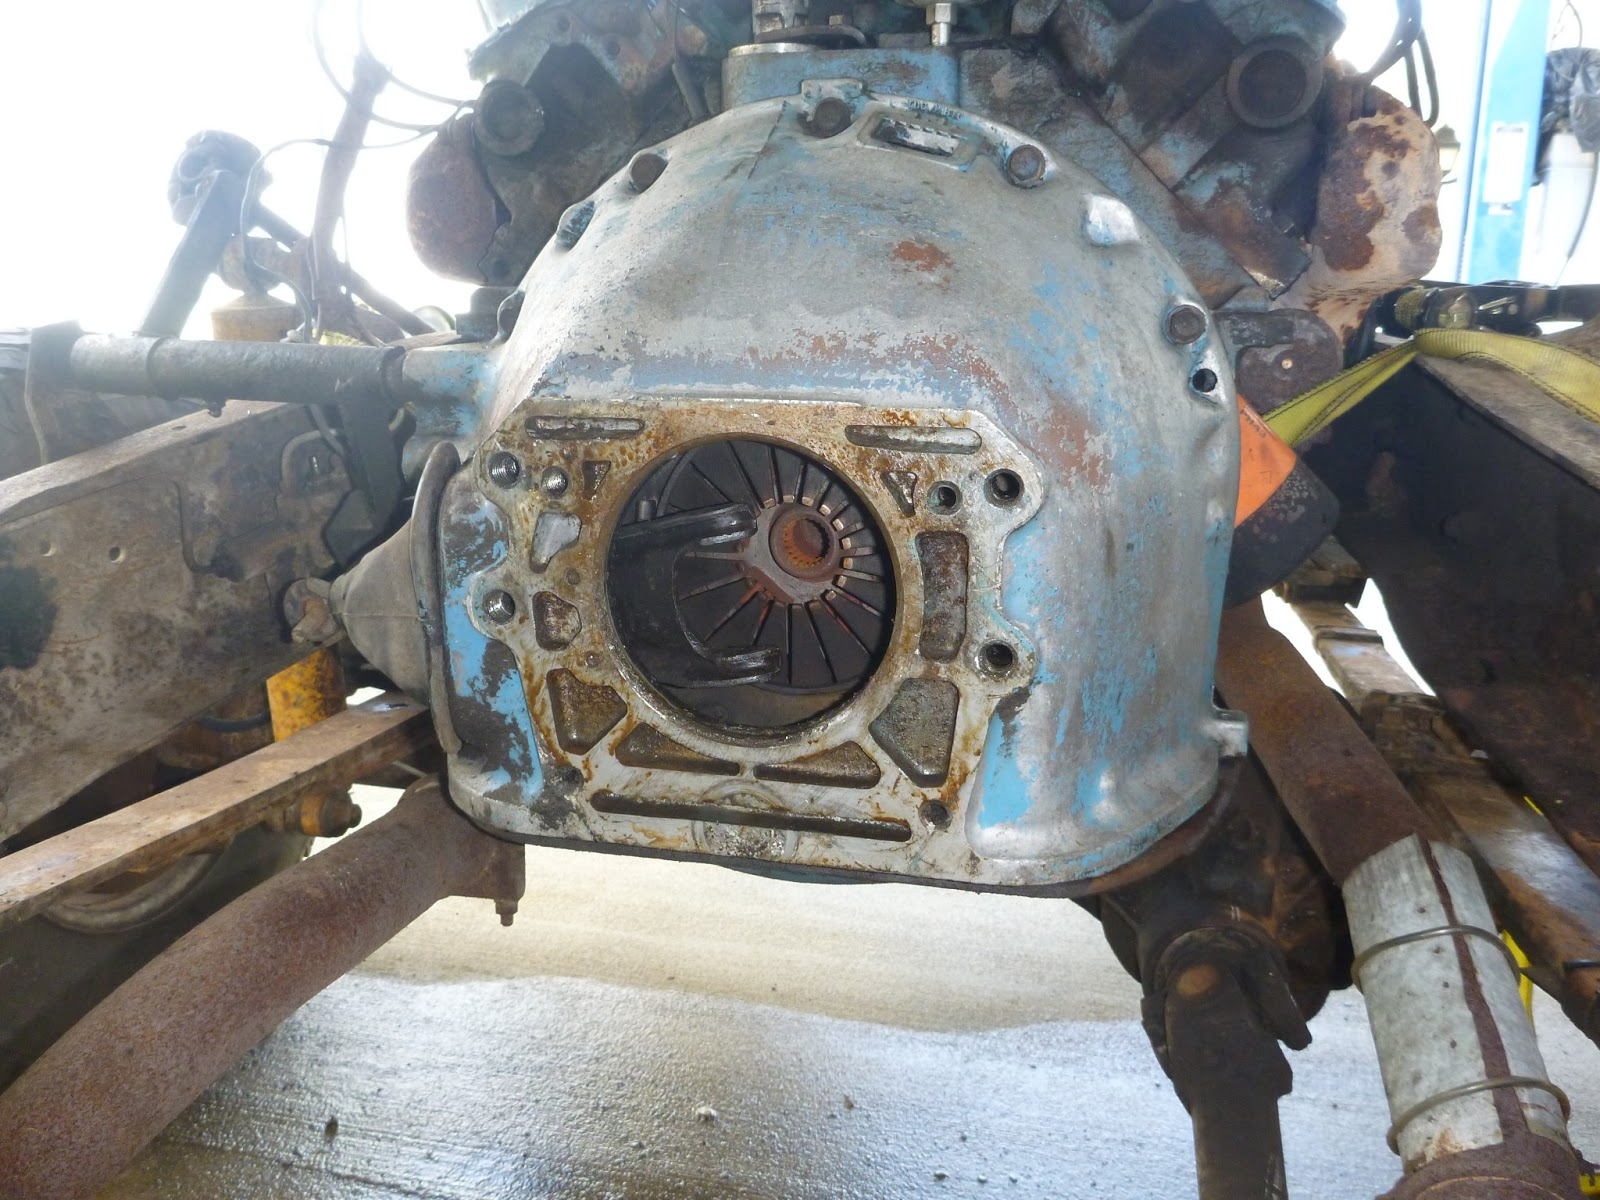 1978 Dodge Club Cab Resto Nv4500 5 Speed Transmission Case Diagram W150 Pulled The And Transfer